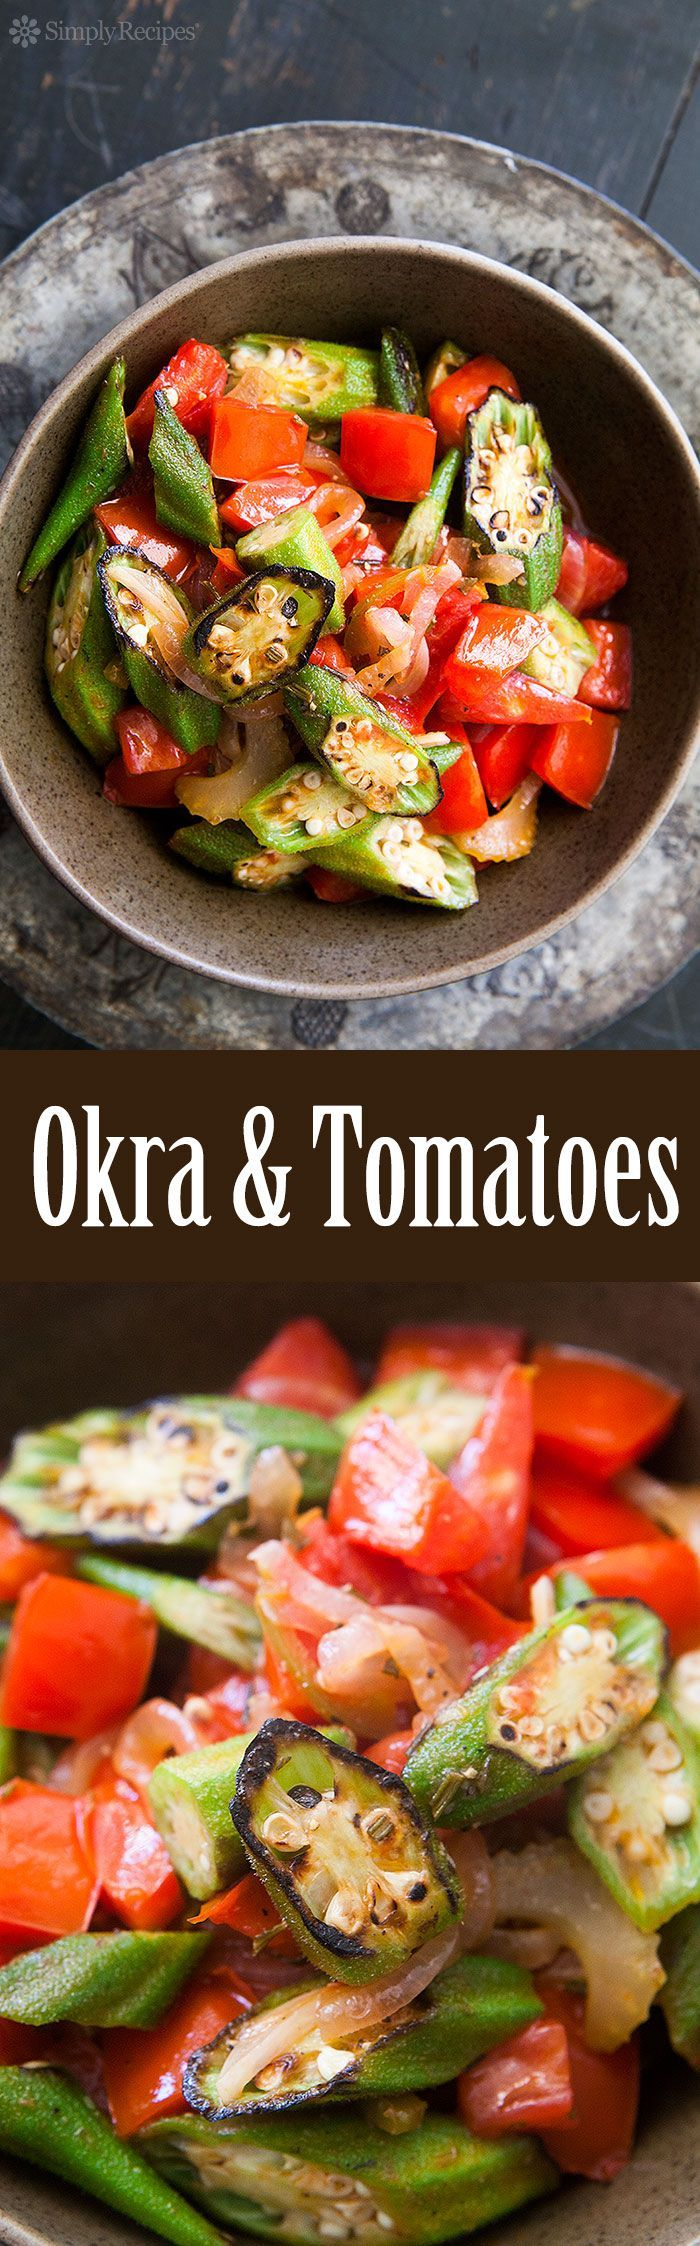 The best way to eat okra! Sliced and quickly seared on high heat, then cooked with fresh tomatoes, onions, and jalapenos. On http://SimplyRecipes.com